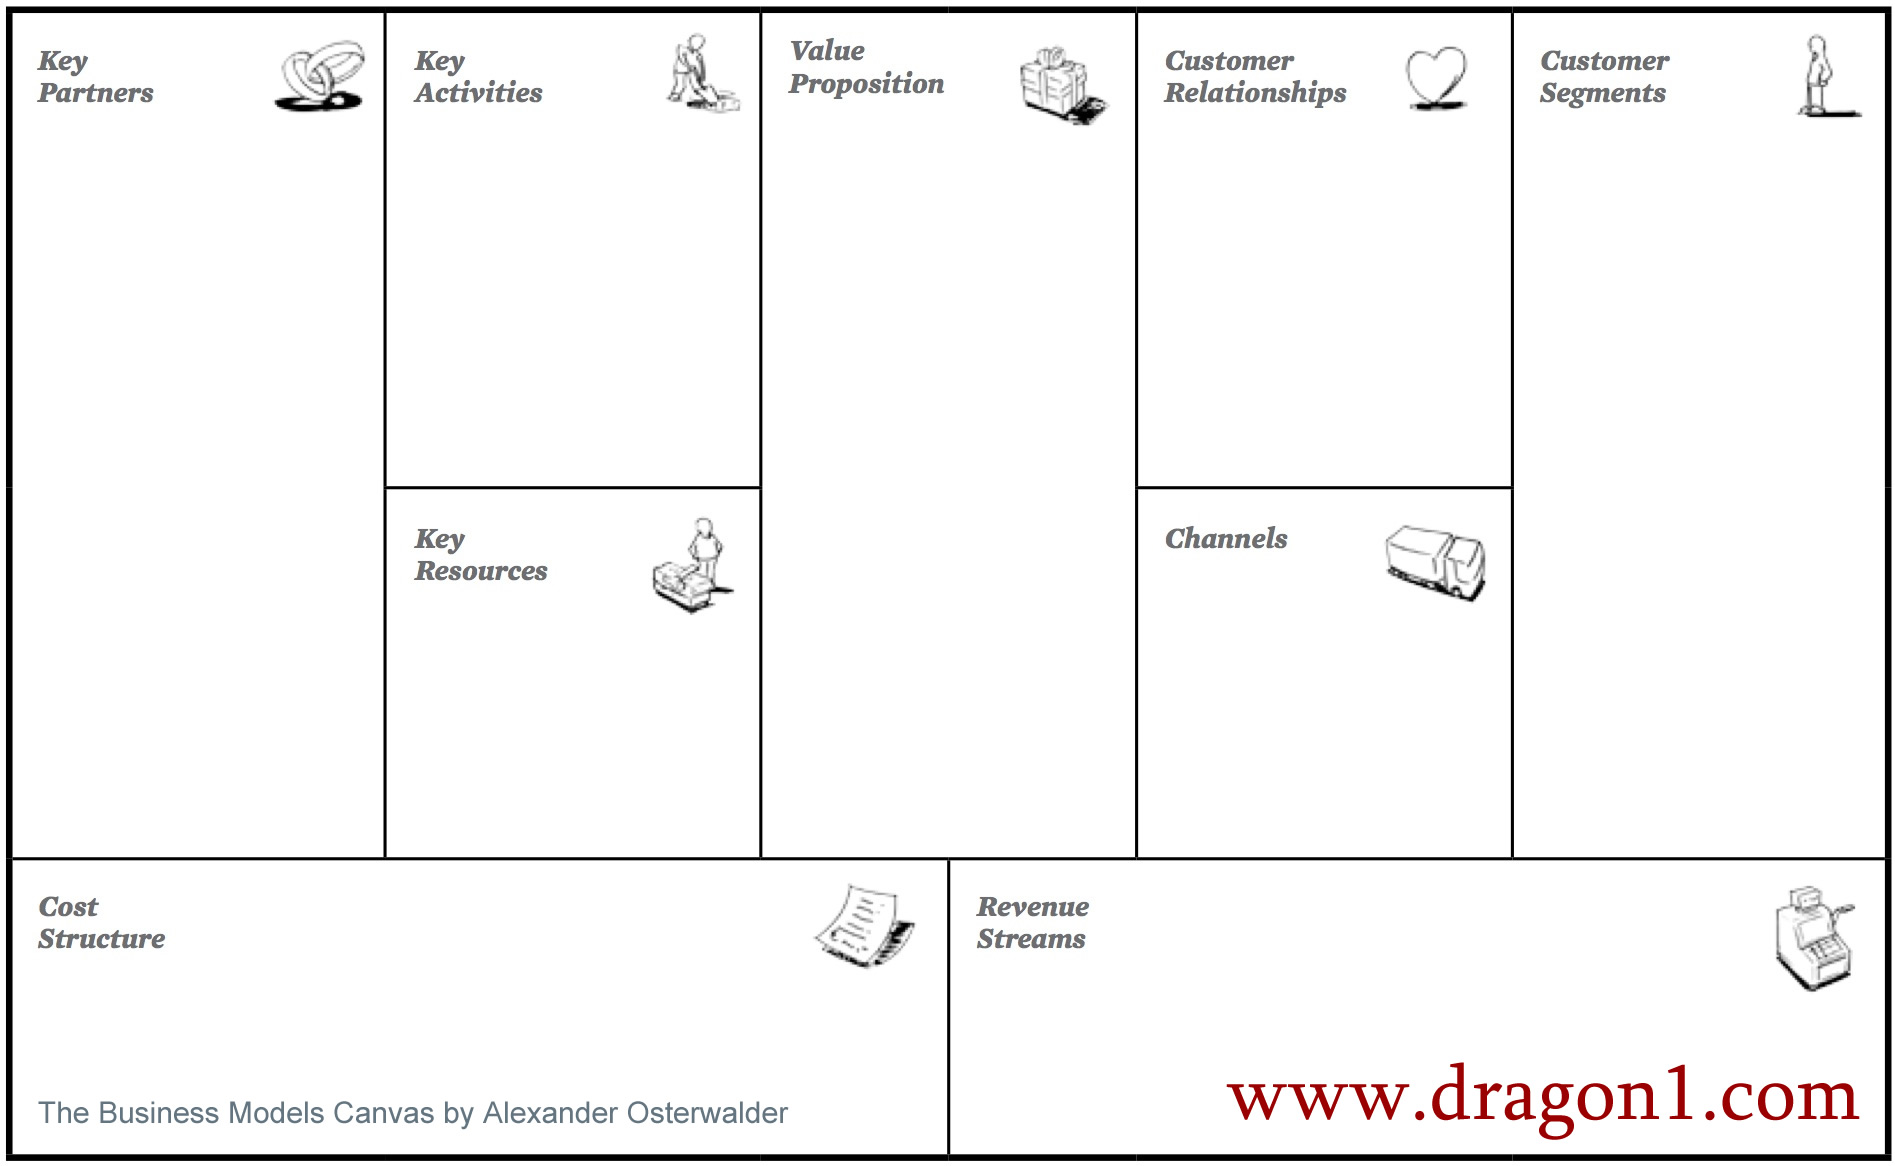 Business model canvas template dragon1 business model canvas template flashek Gallery